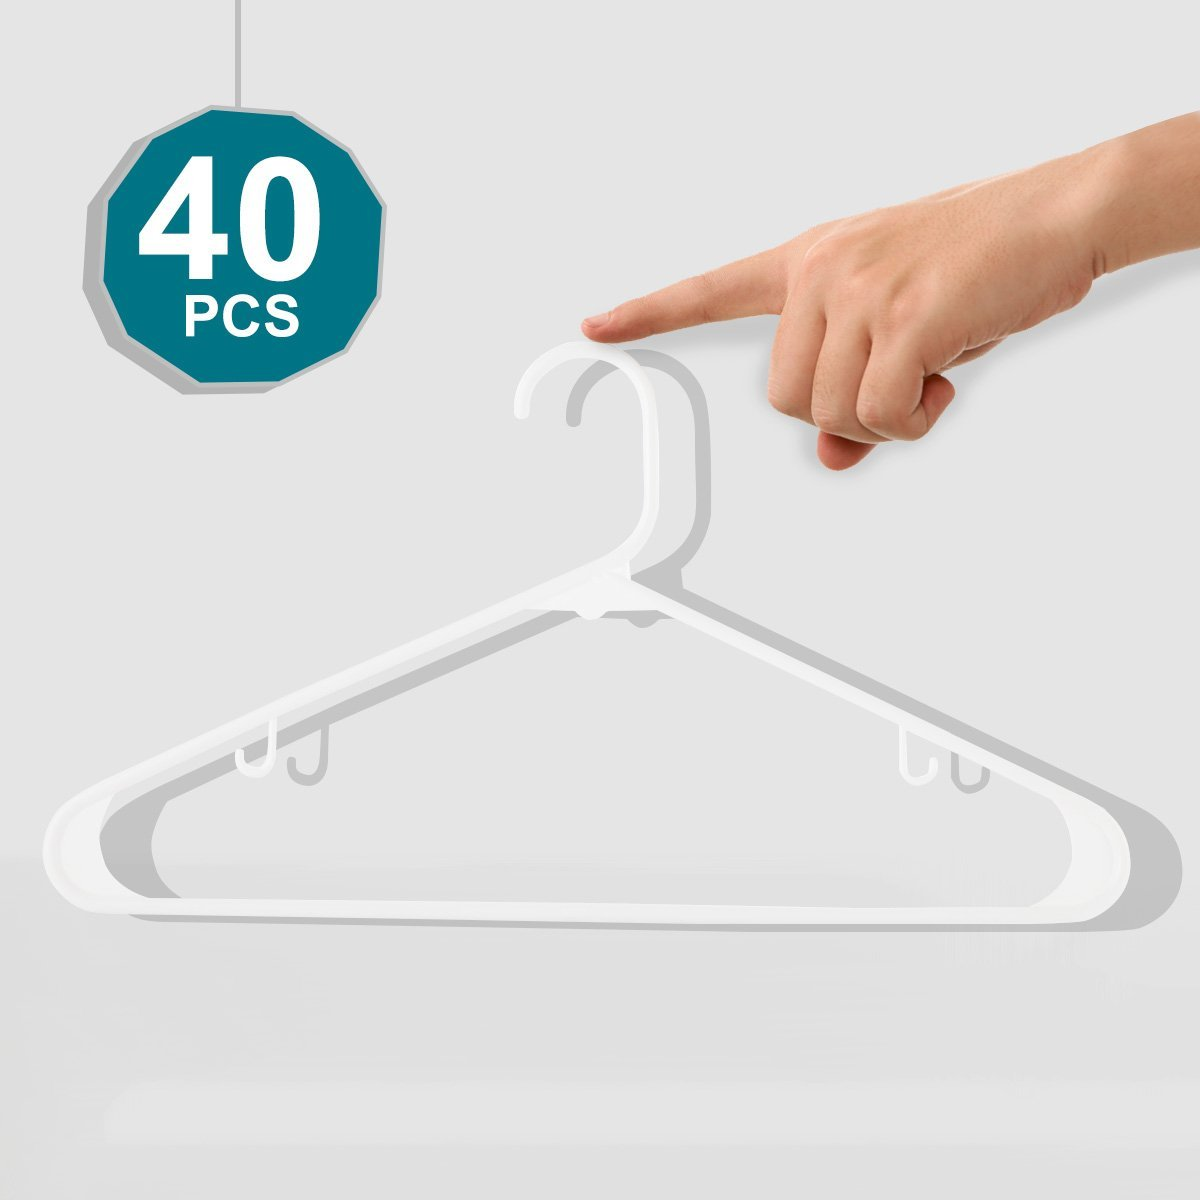 White Plastic Hangers,Everyday Standard Tubular Hangers,Premium Quality Heavy Duty Hangers,Durable and Strong Clothes Hangers,Adult Stylish Simple Suit hangers,Perfect for Shirt,Coat,Dress Pack of 40 by Realcozy